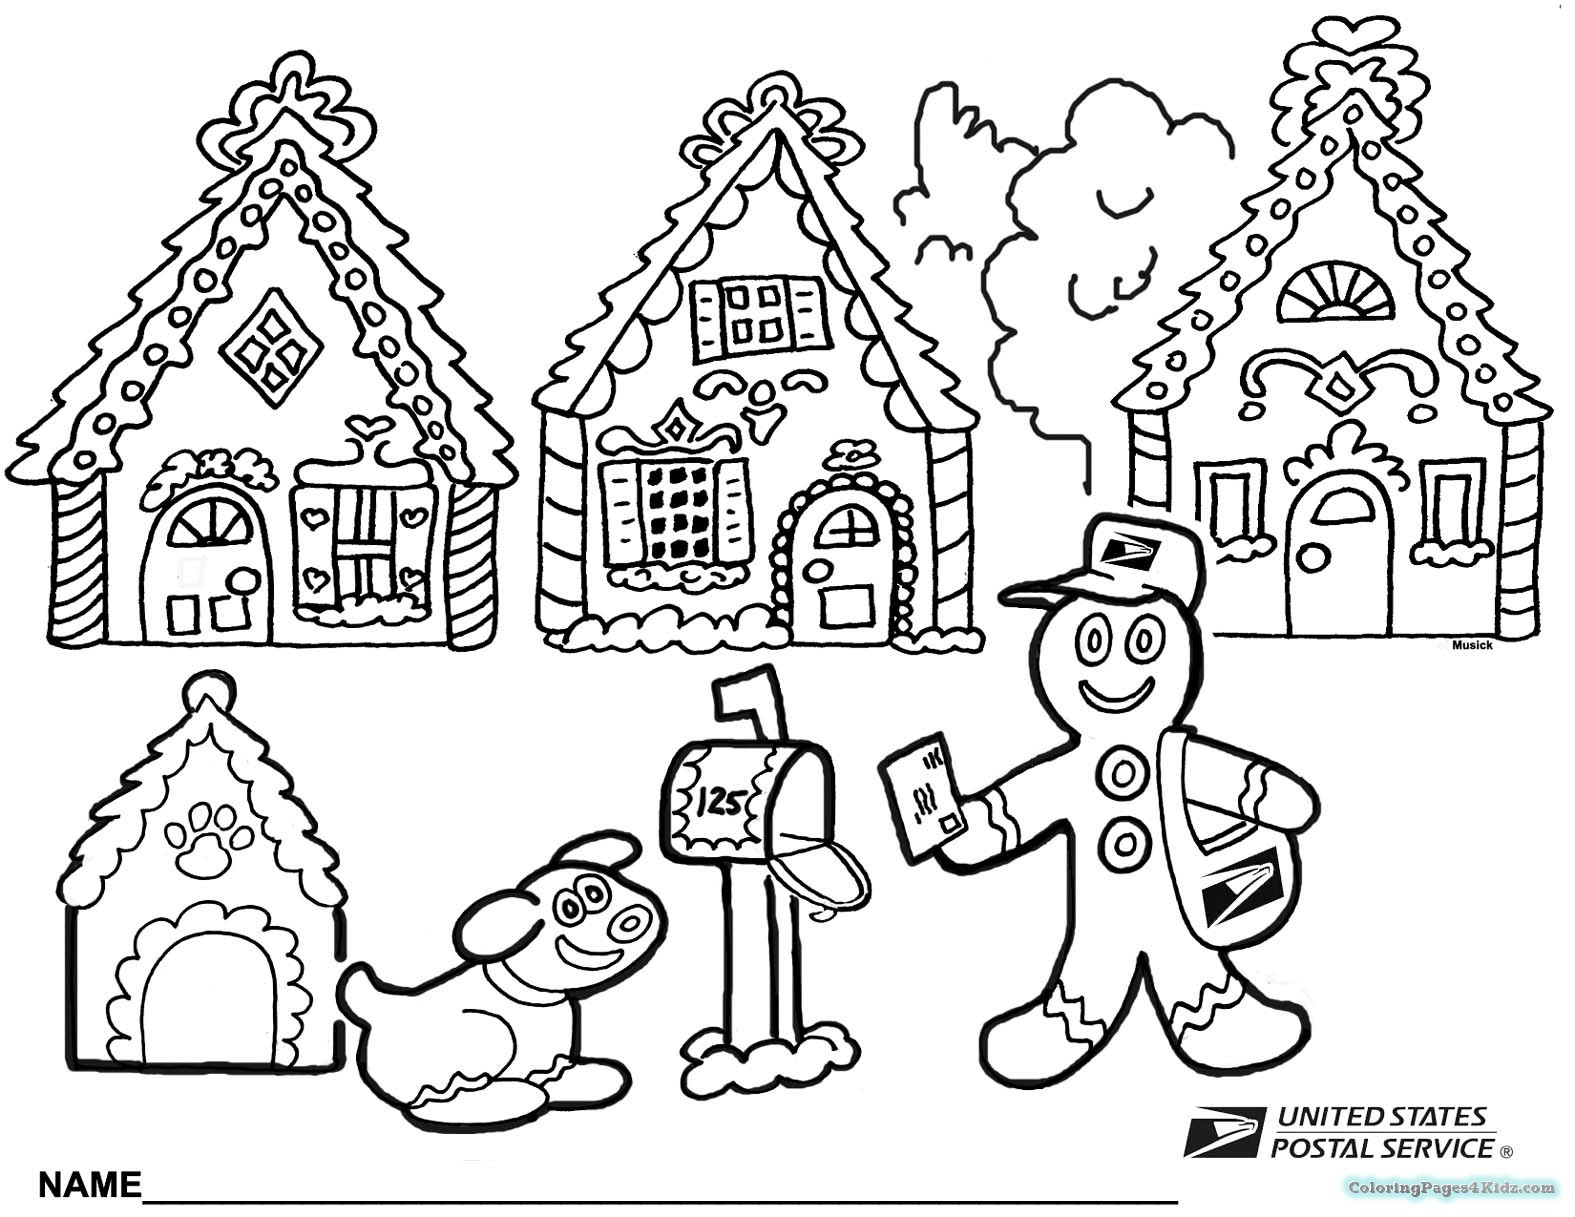 gingerbread house coloring page gingerbread house coloring page gingerbread coloring house page